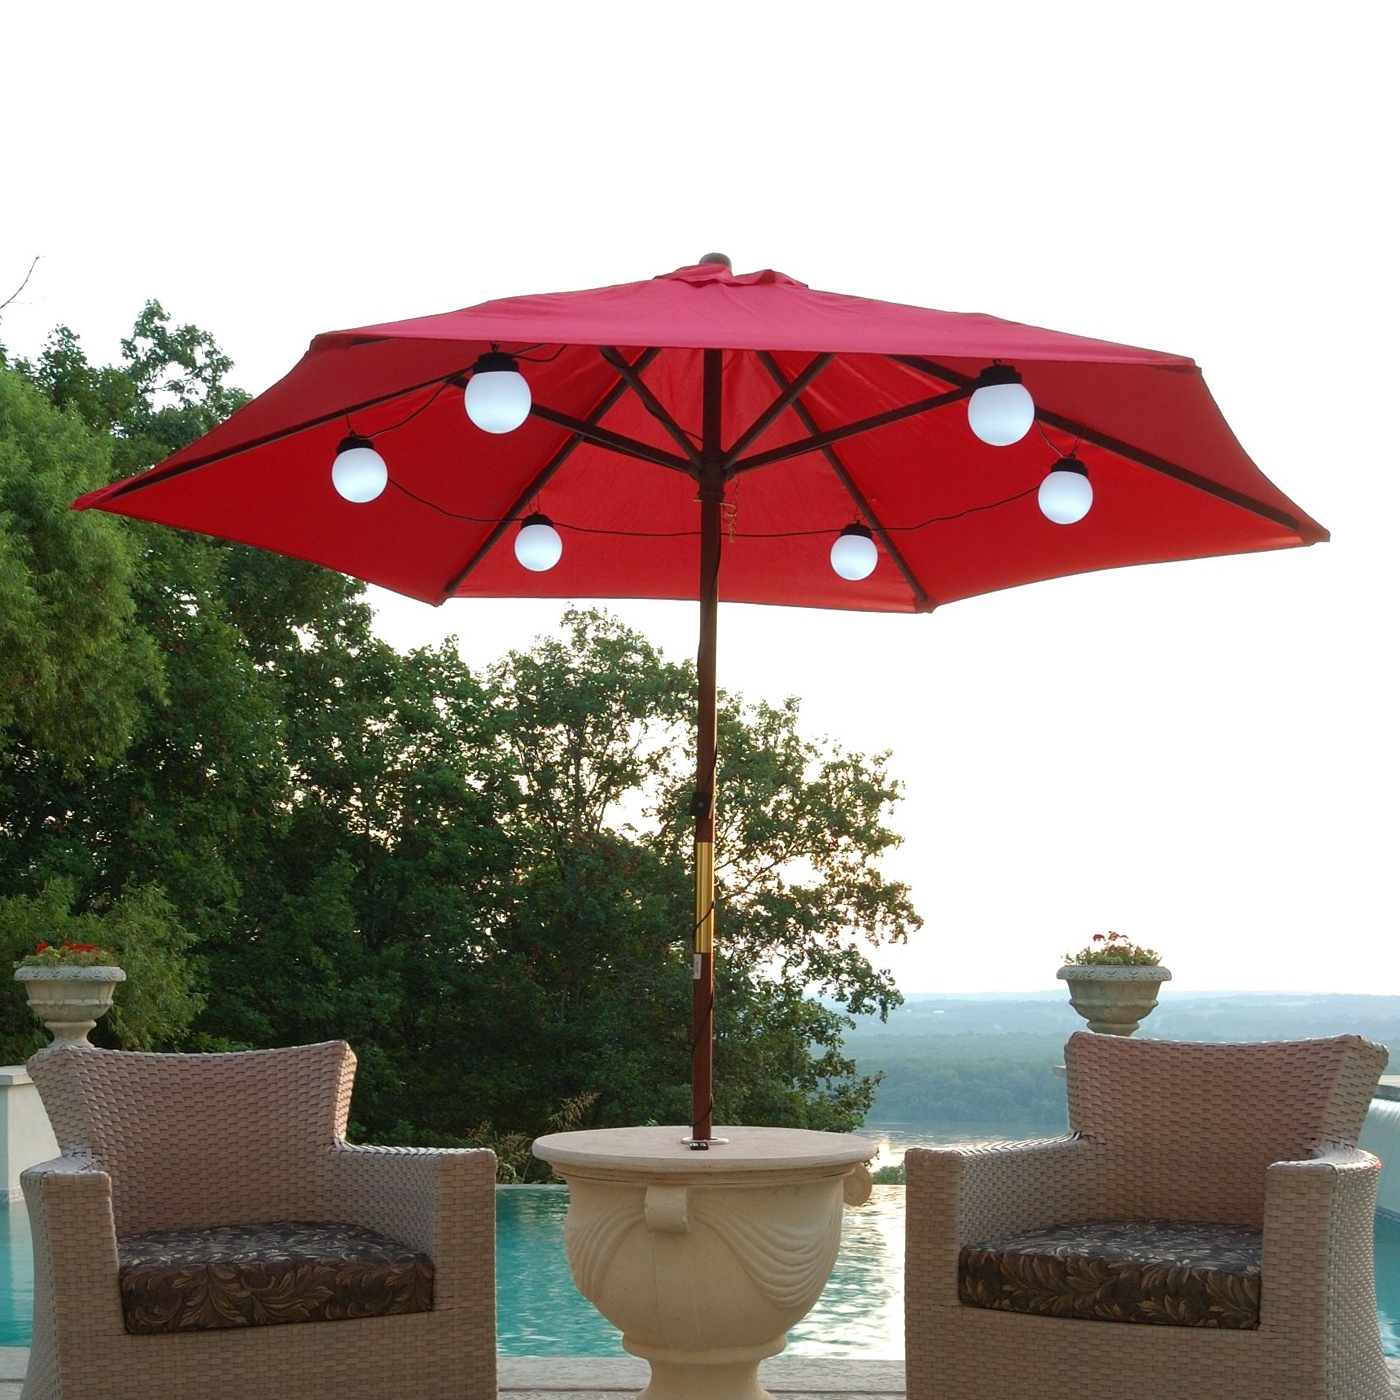 Popular Patio Living Concepts 080 Bright White Led Solar Powered Umbrella Throughout Patio Umbrellas With Solar Lights (View 15 of 20)